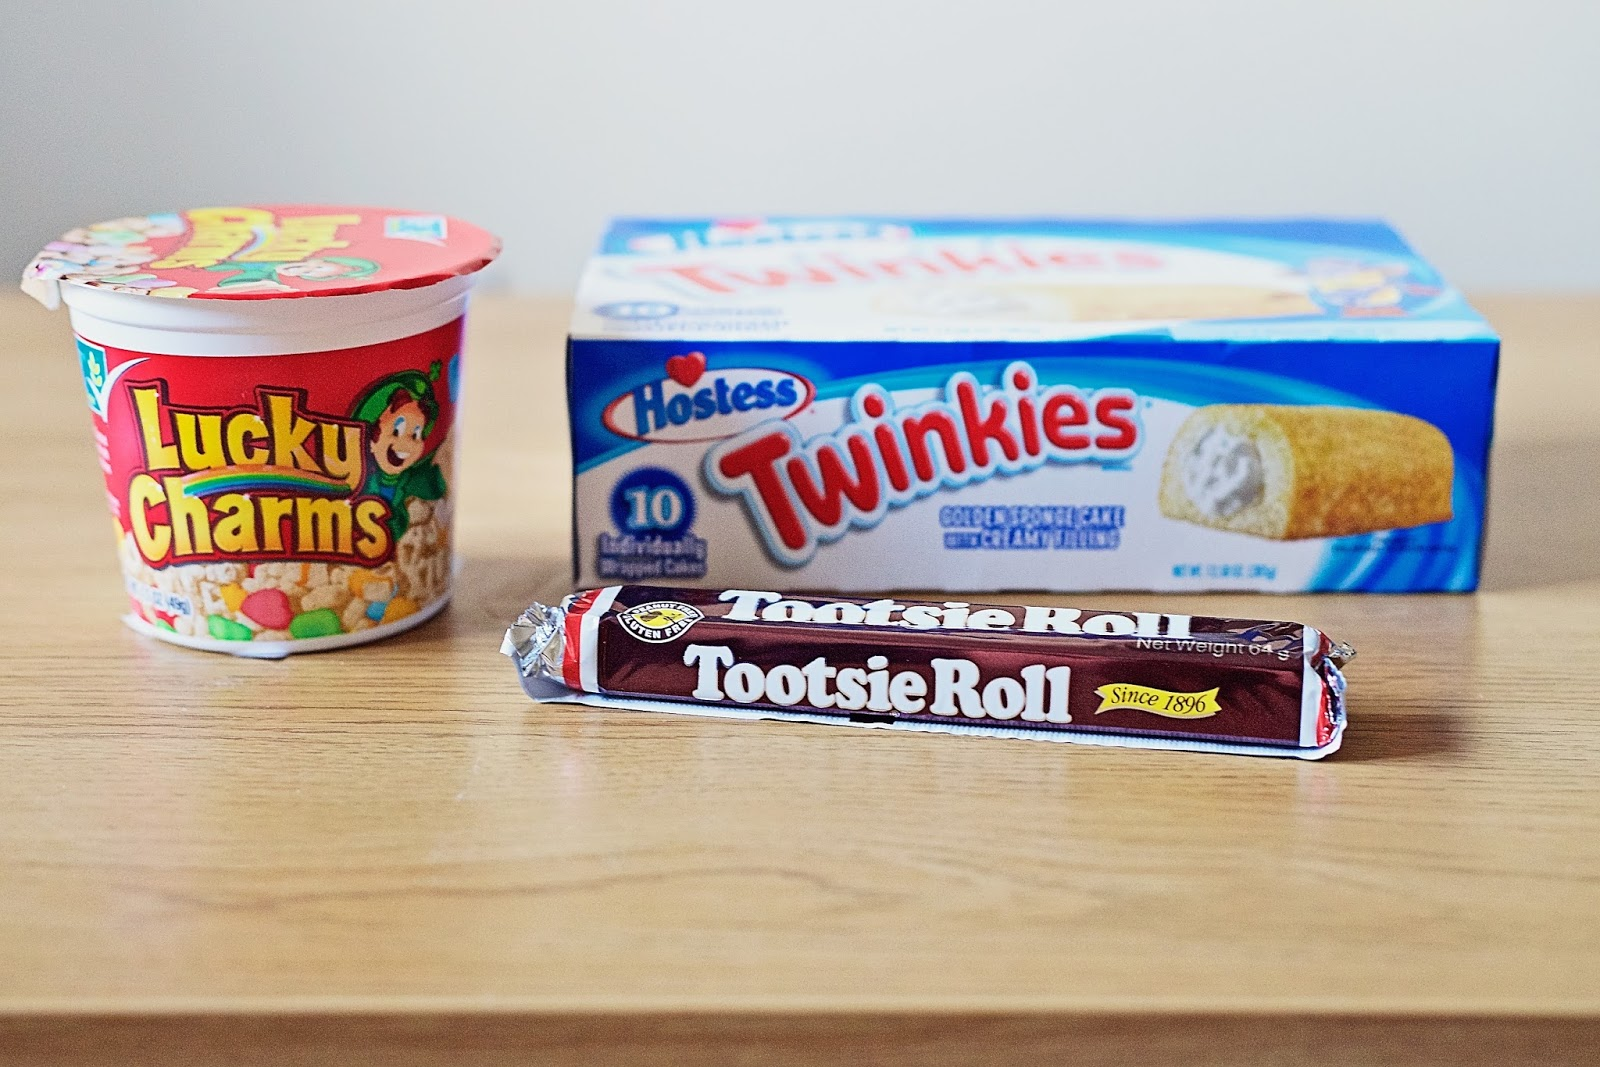 Box of twinkles, lucky charms cereal and a tootsie roll